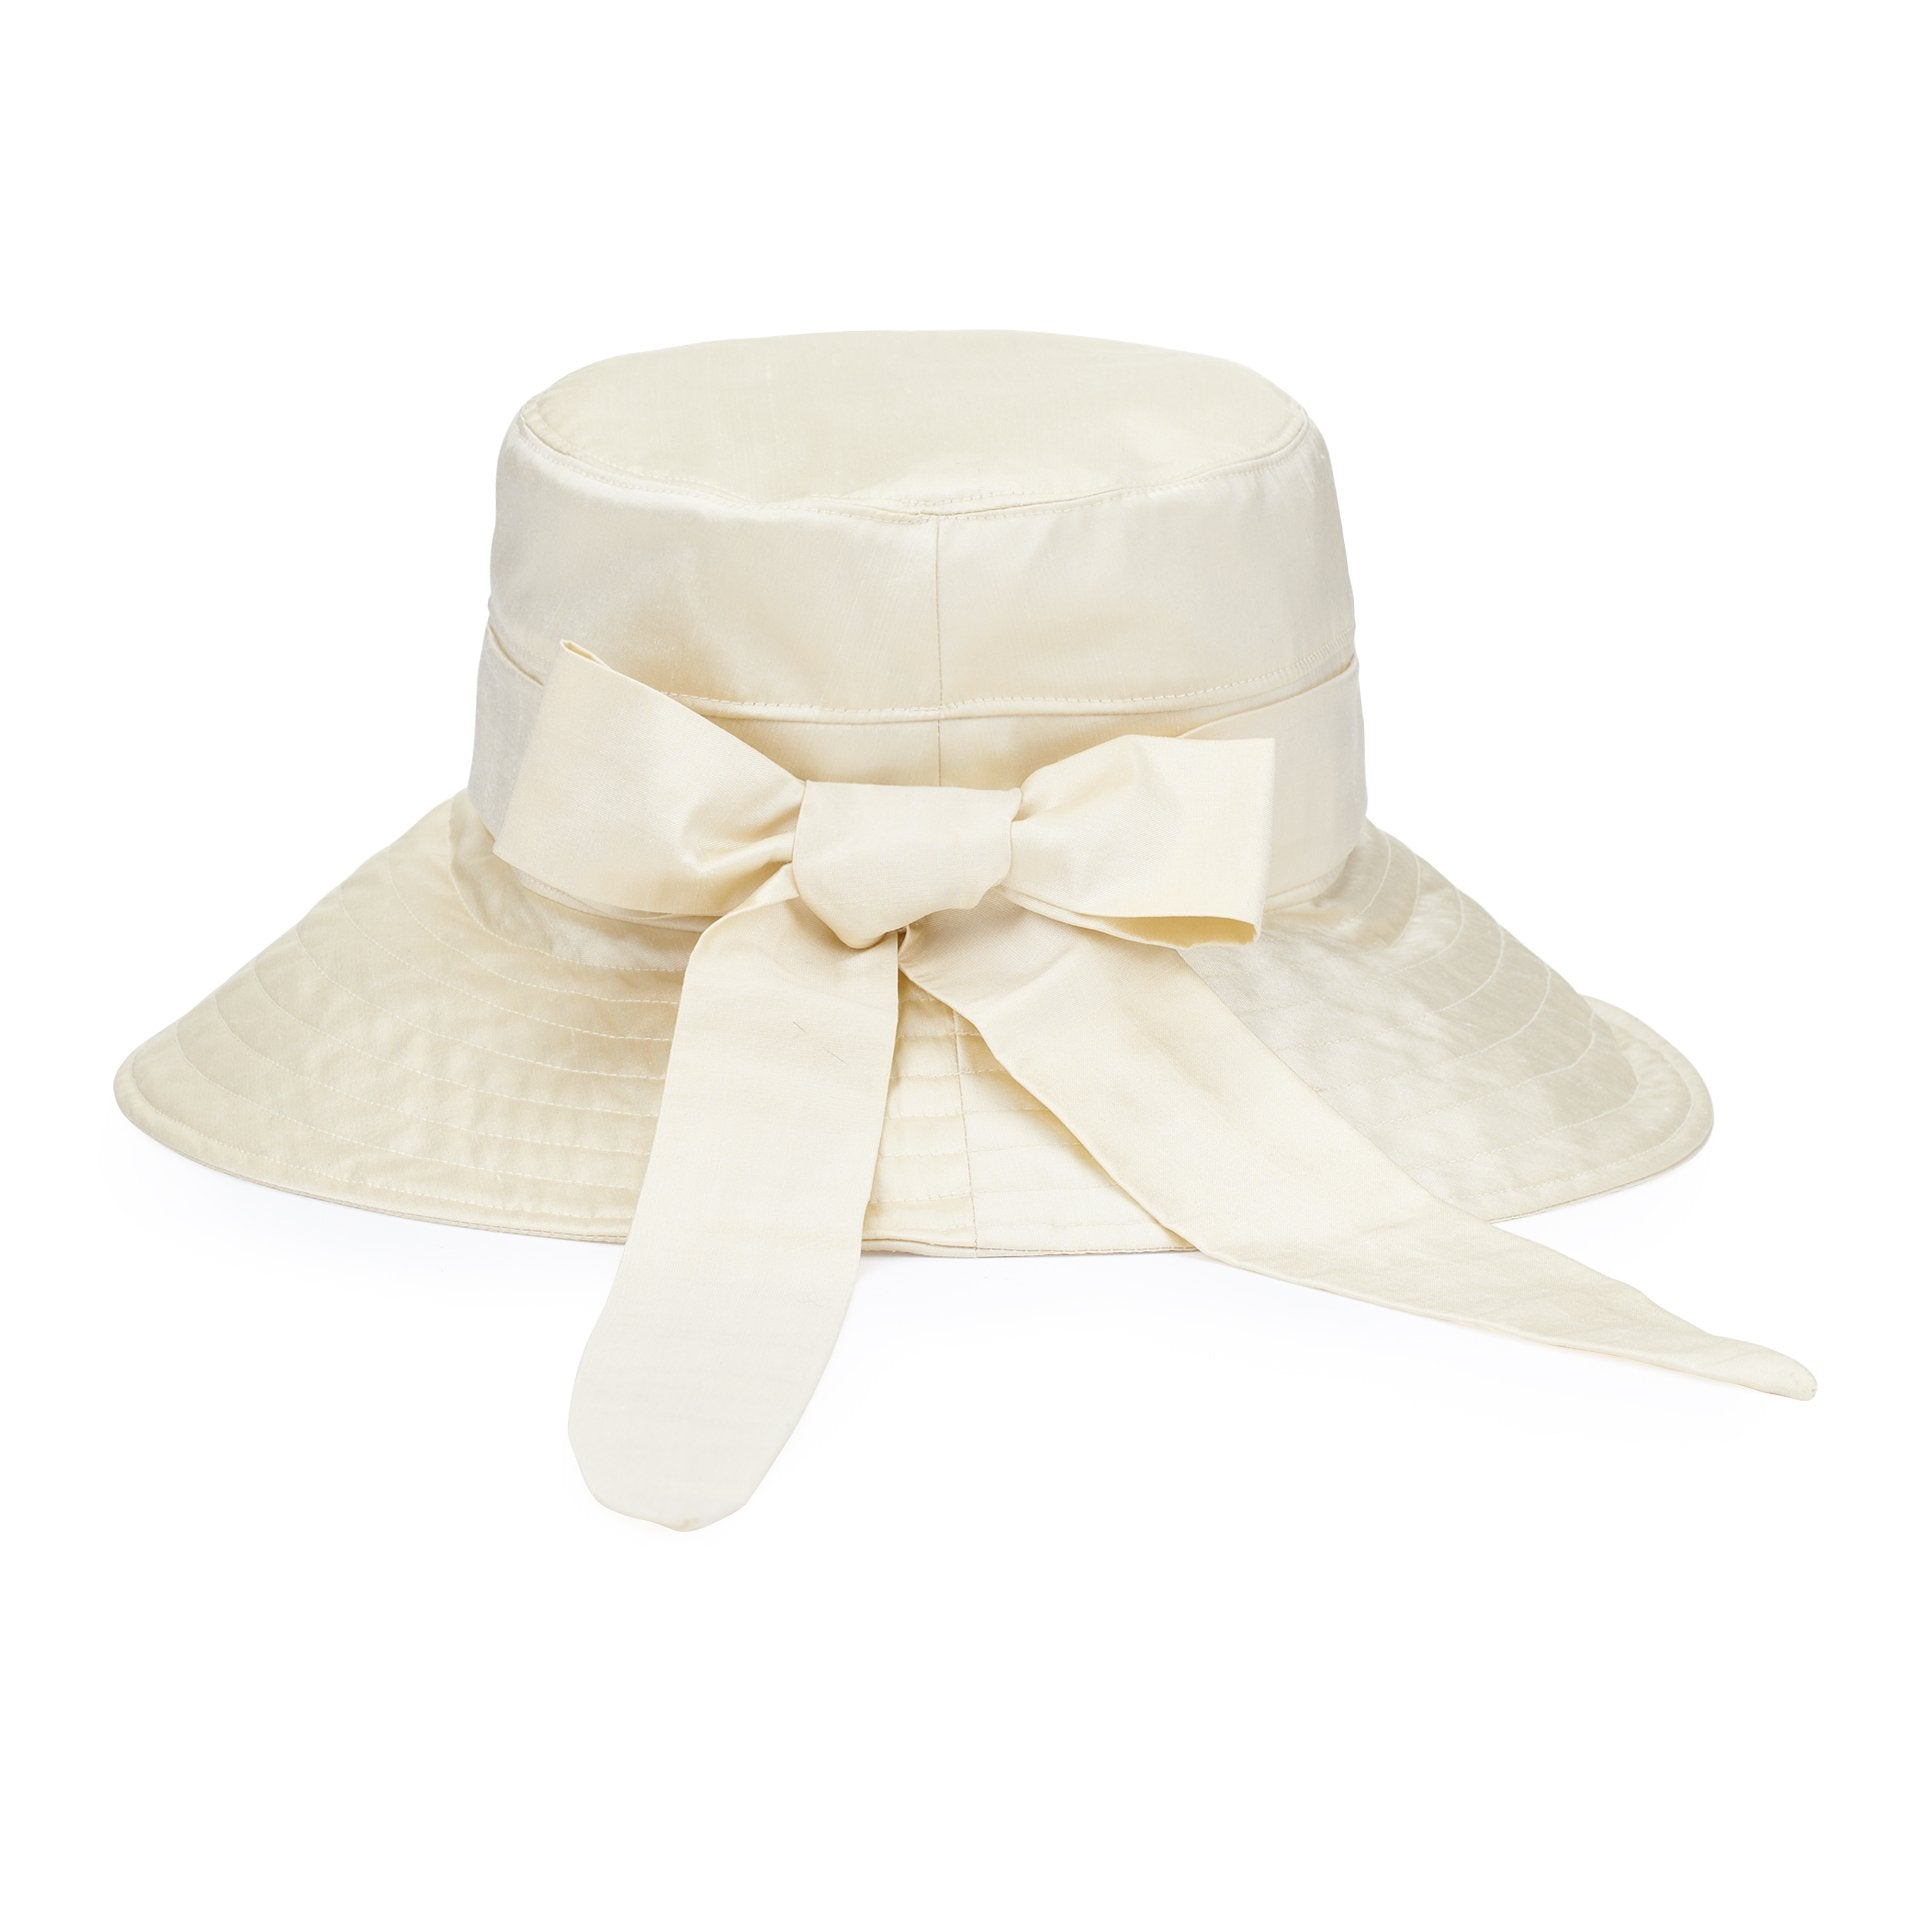 Brigitte silk sun hat - Panamas, Straw and Sun Hats for Women - Lock & Co. Hatters London UK